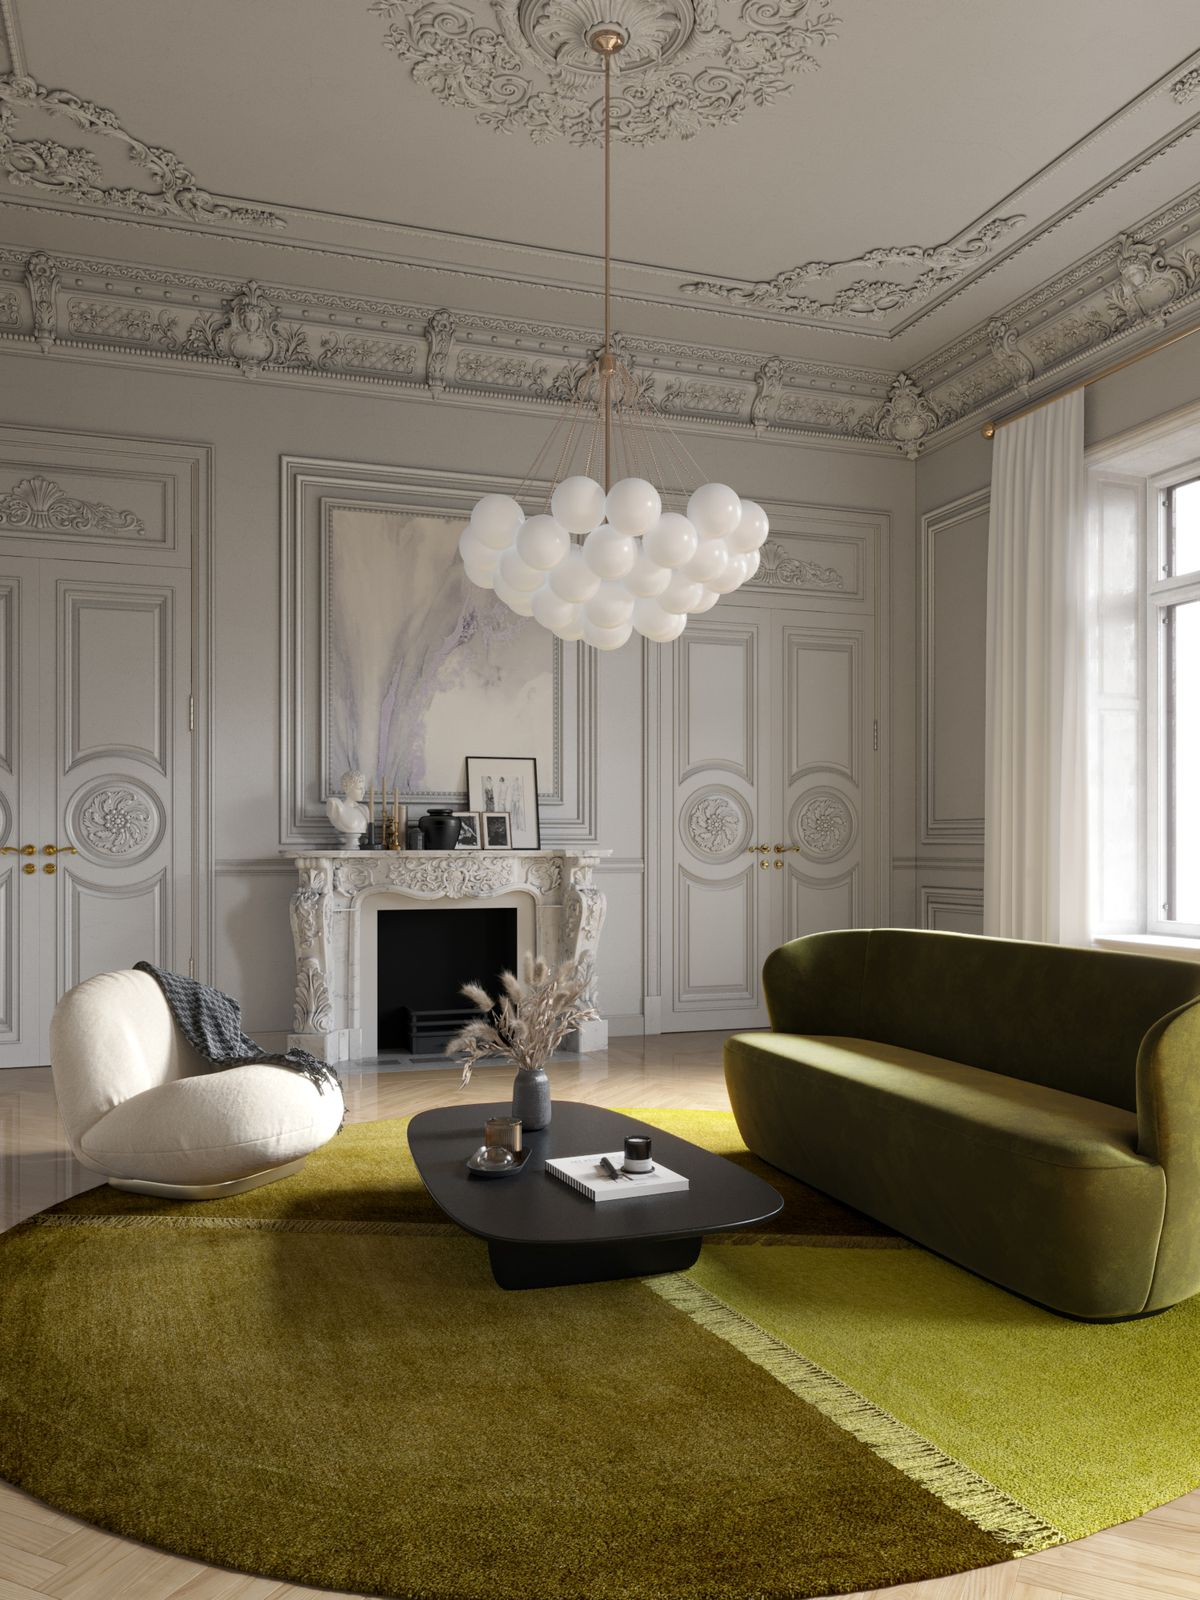 Luxury Parisian appartment with GUBI furniture and Illulian rug